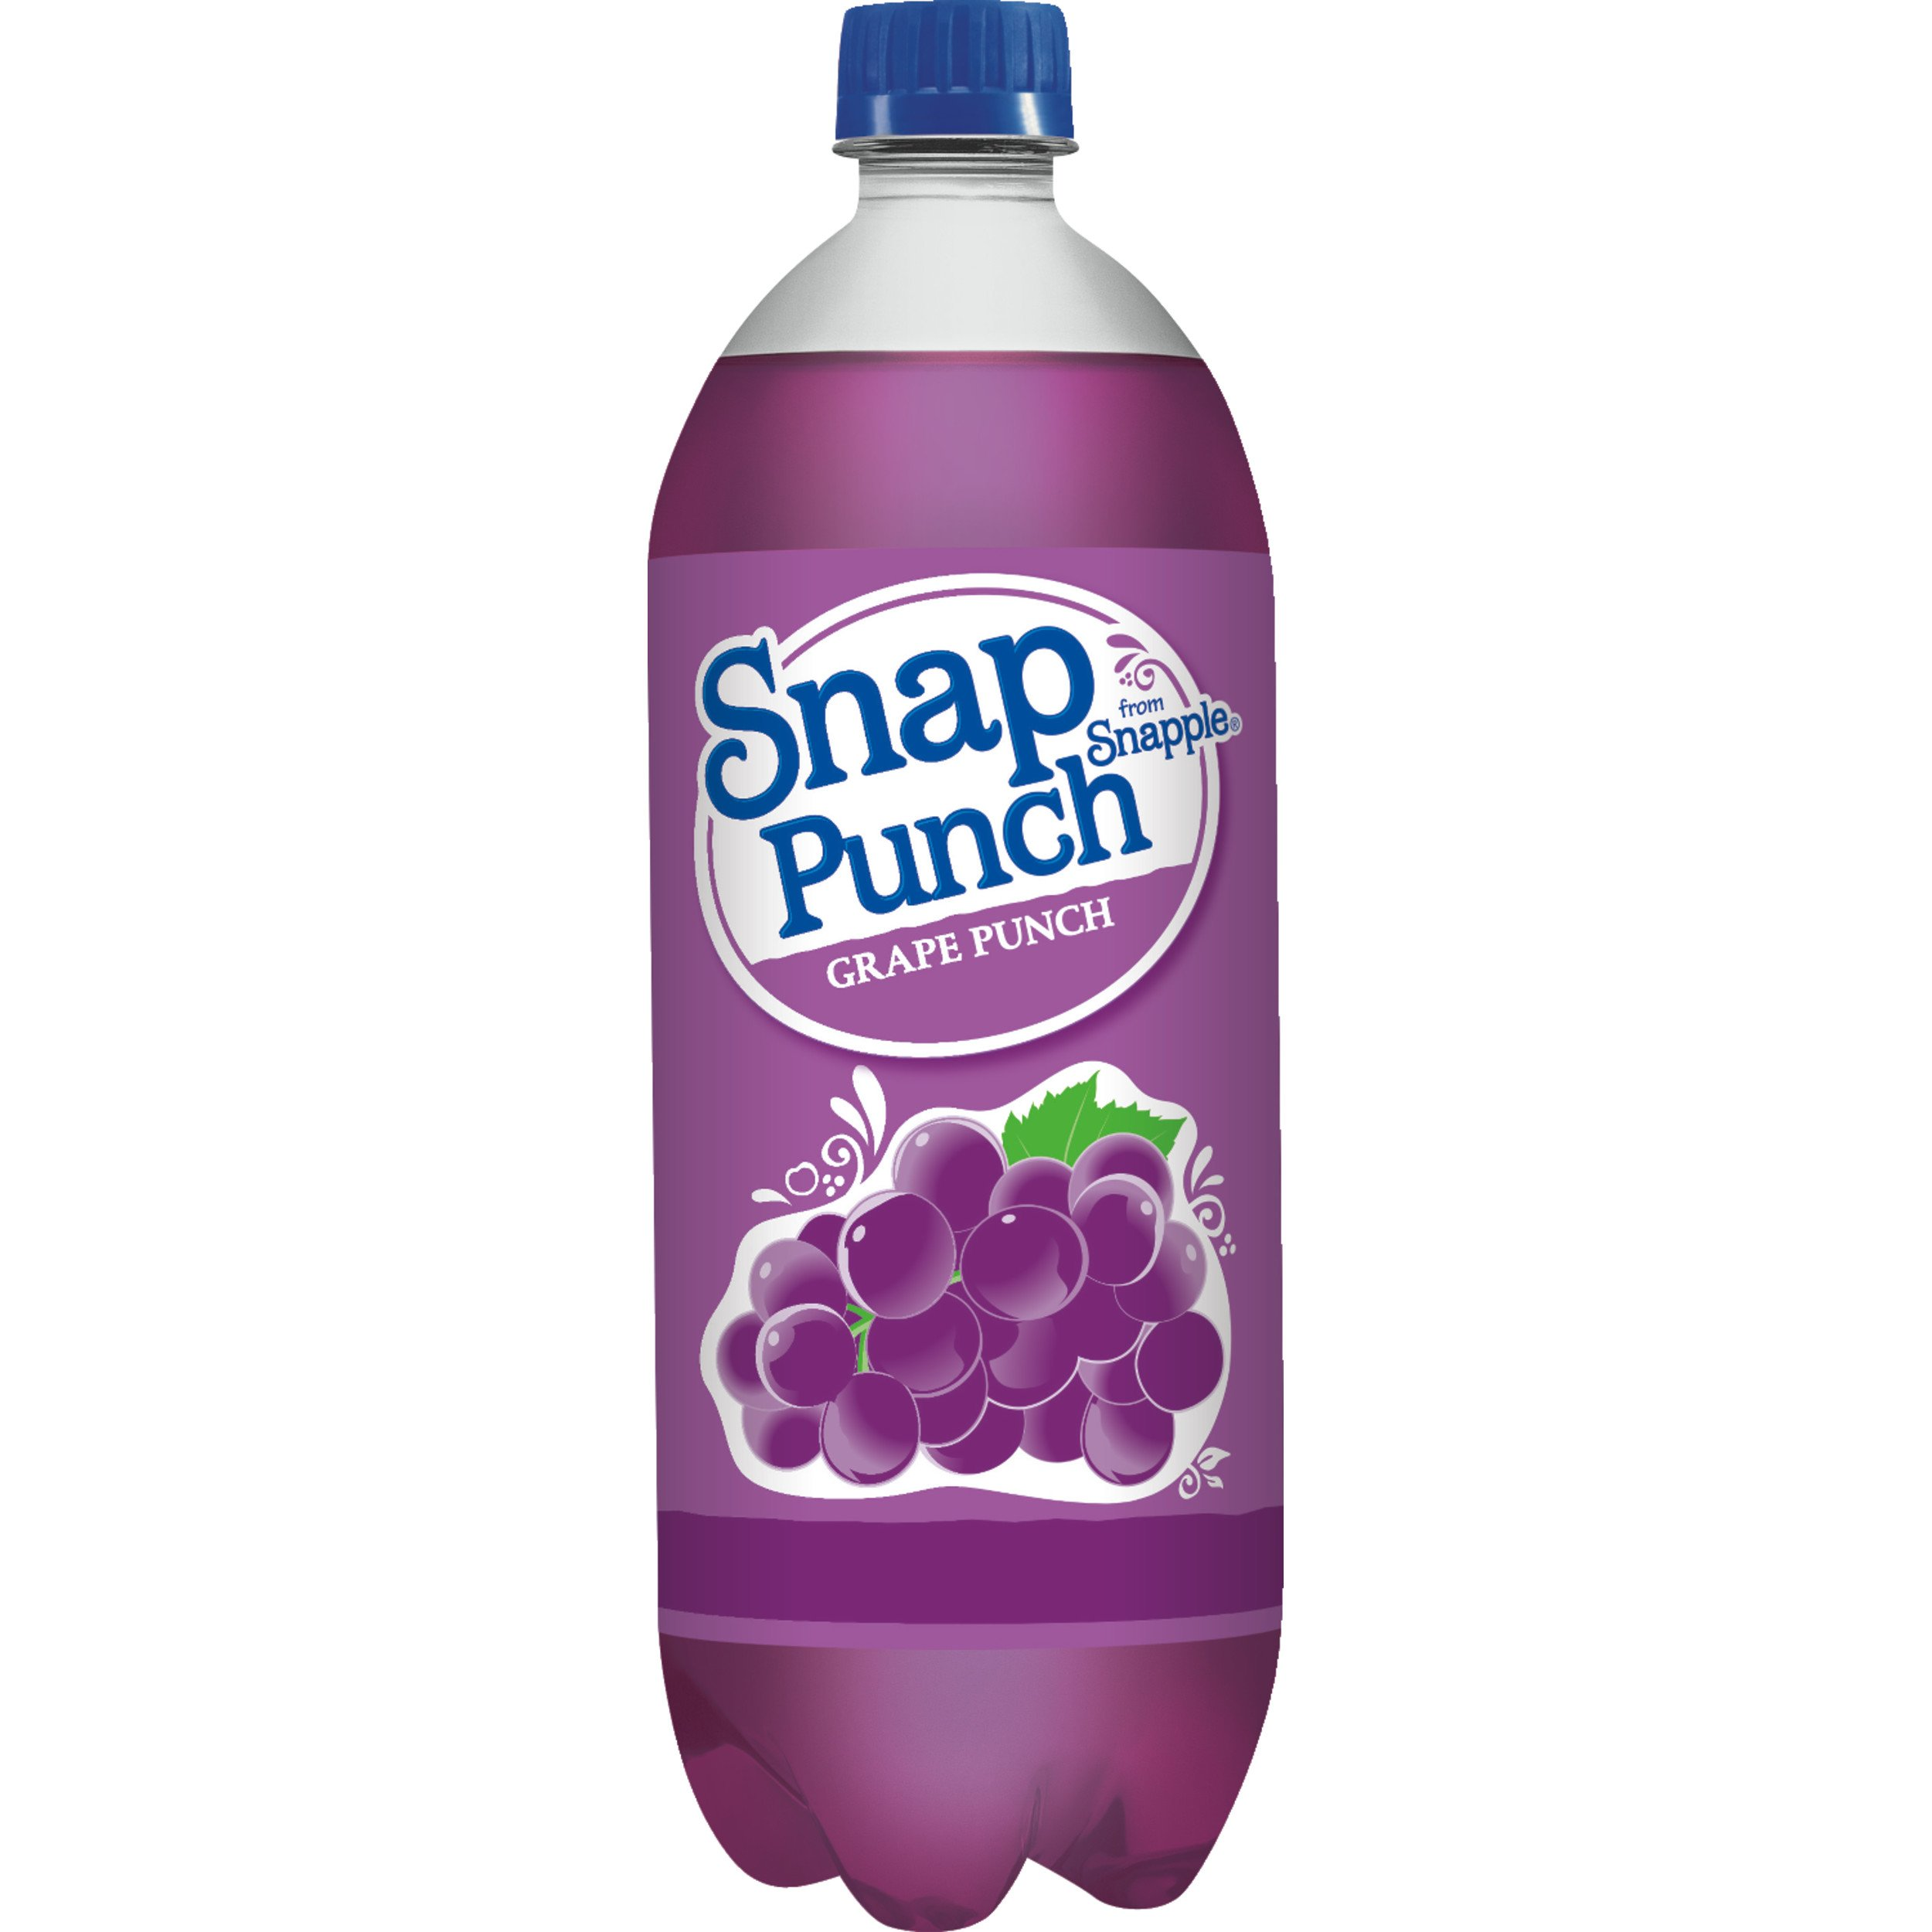 Snapple SnapPunch Grape Punch ‑ Shop